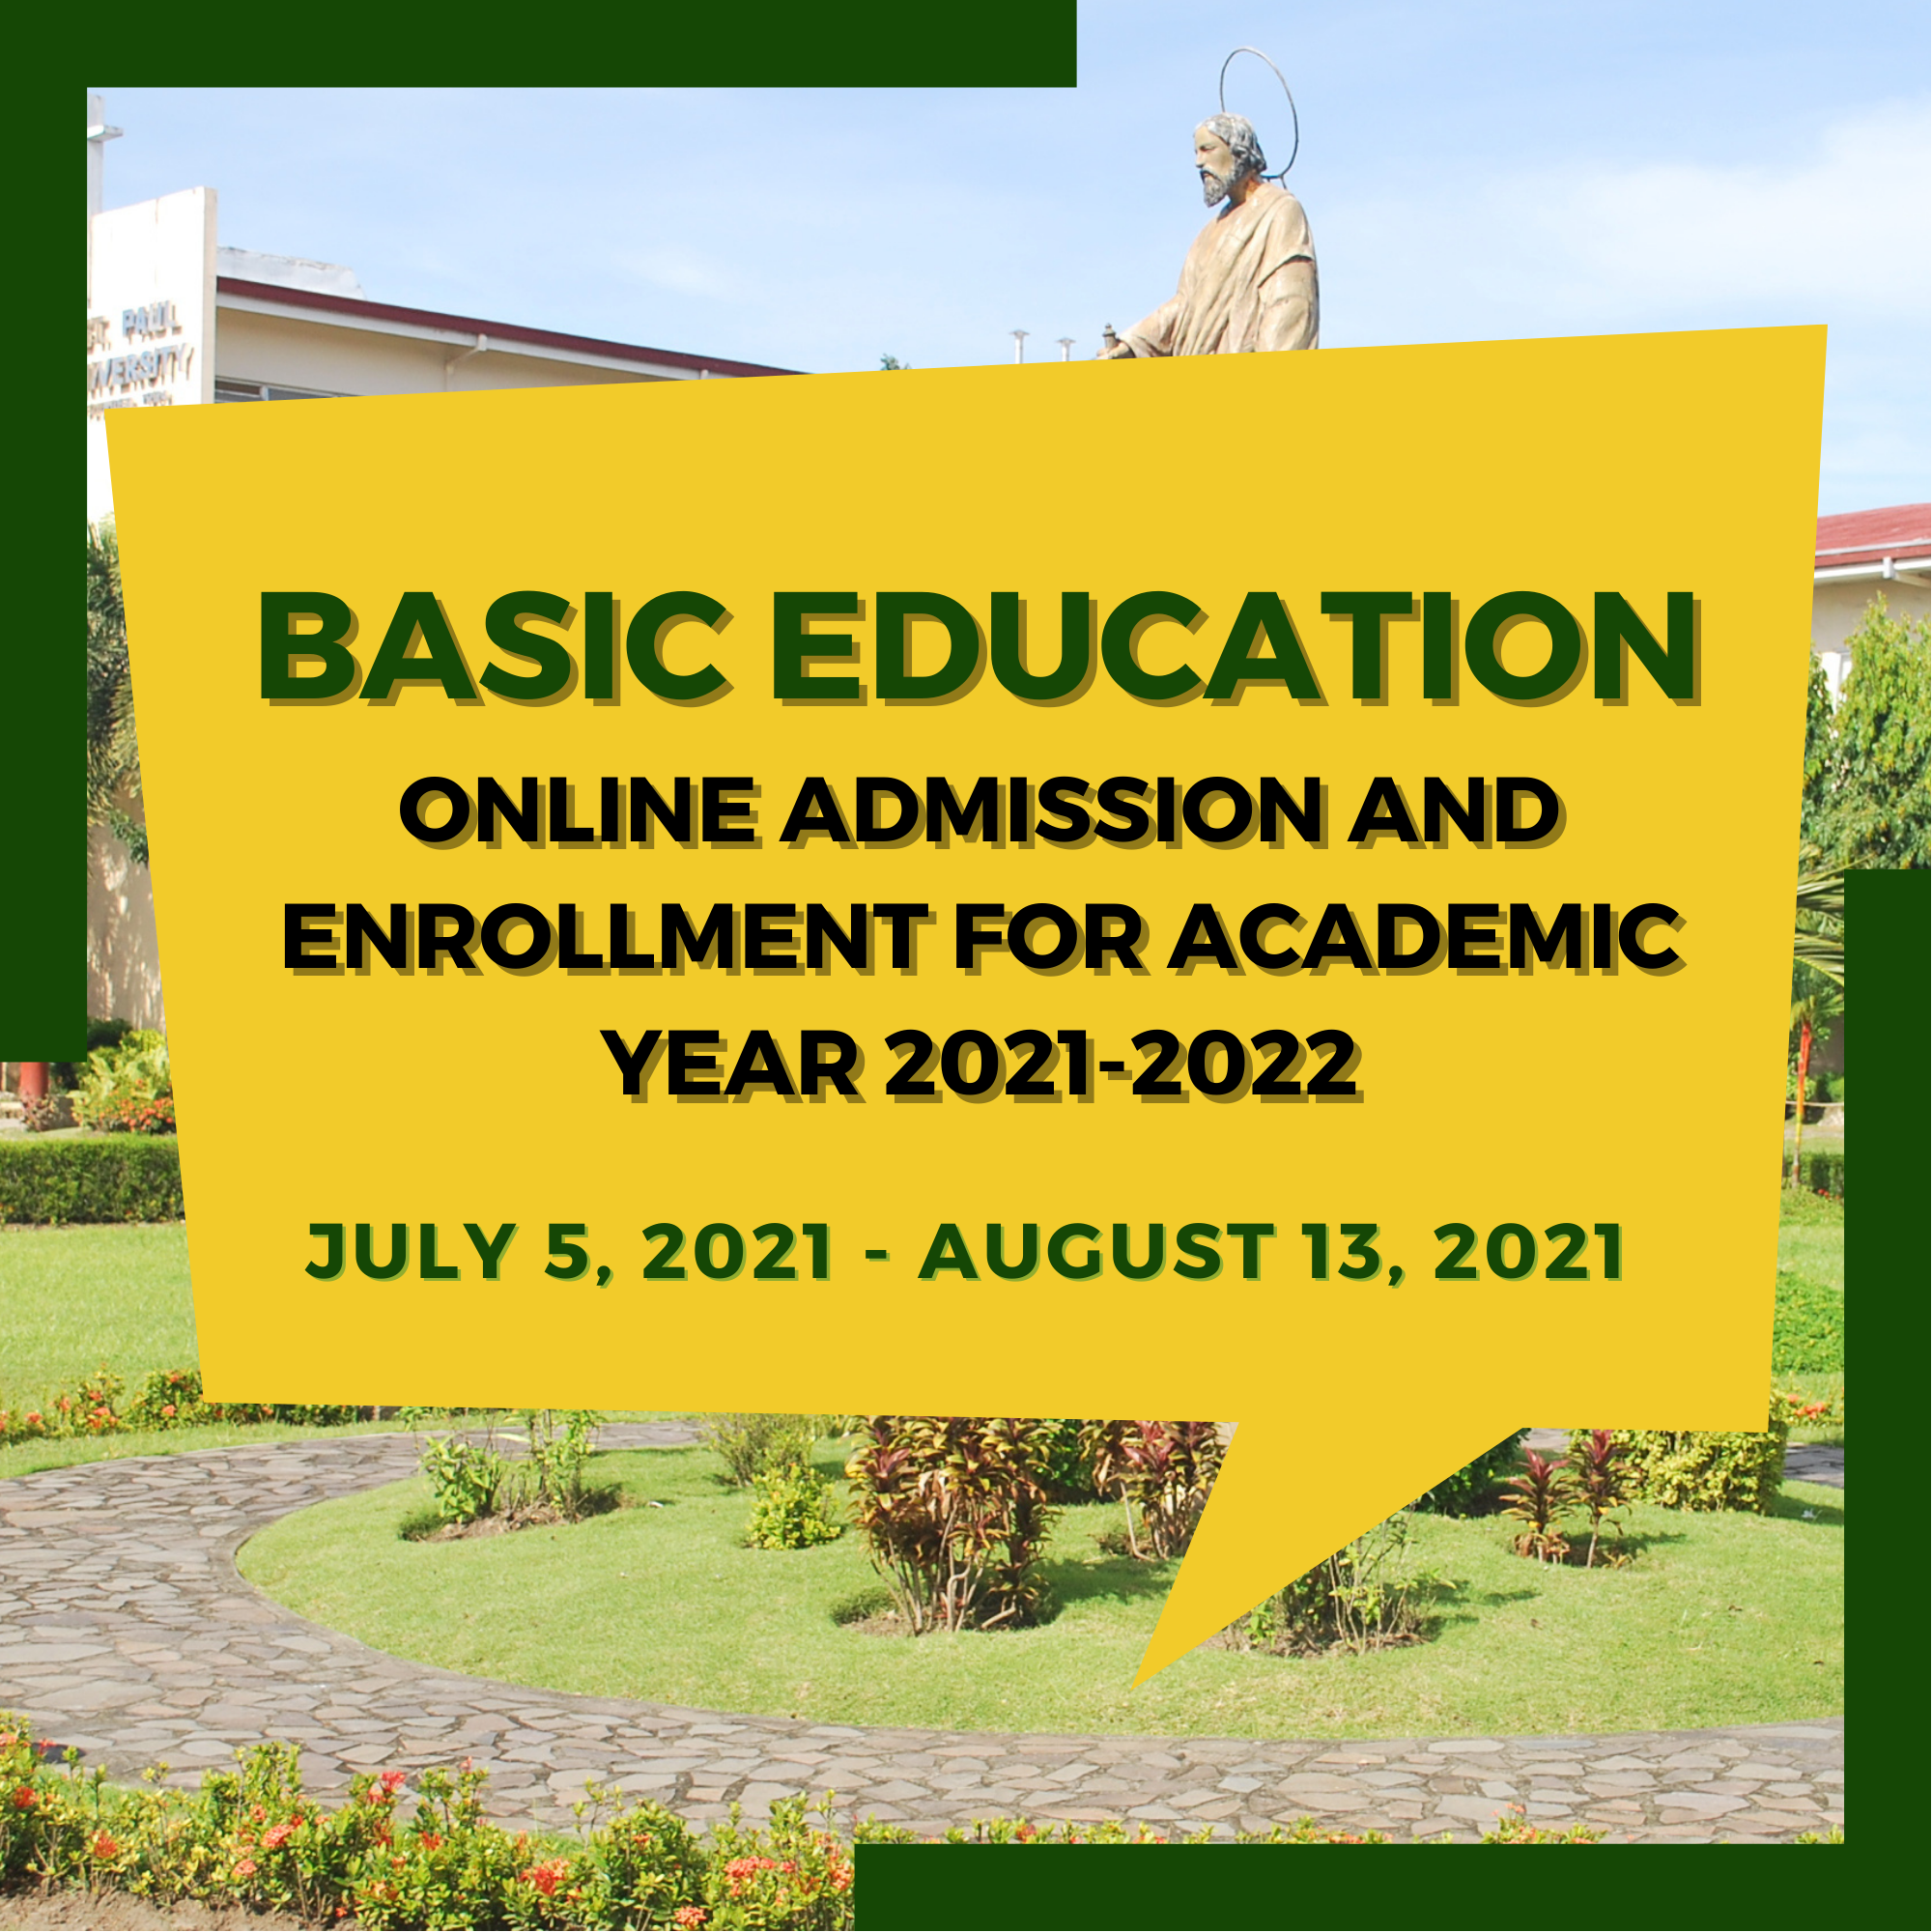 Basic Education Online Admission and Enrollment for Academic Year 2021-2022